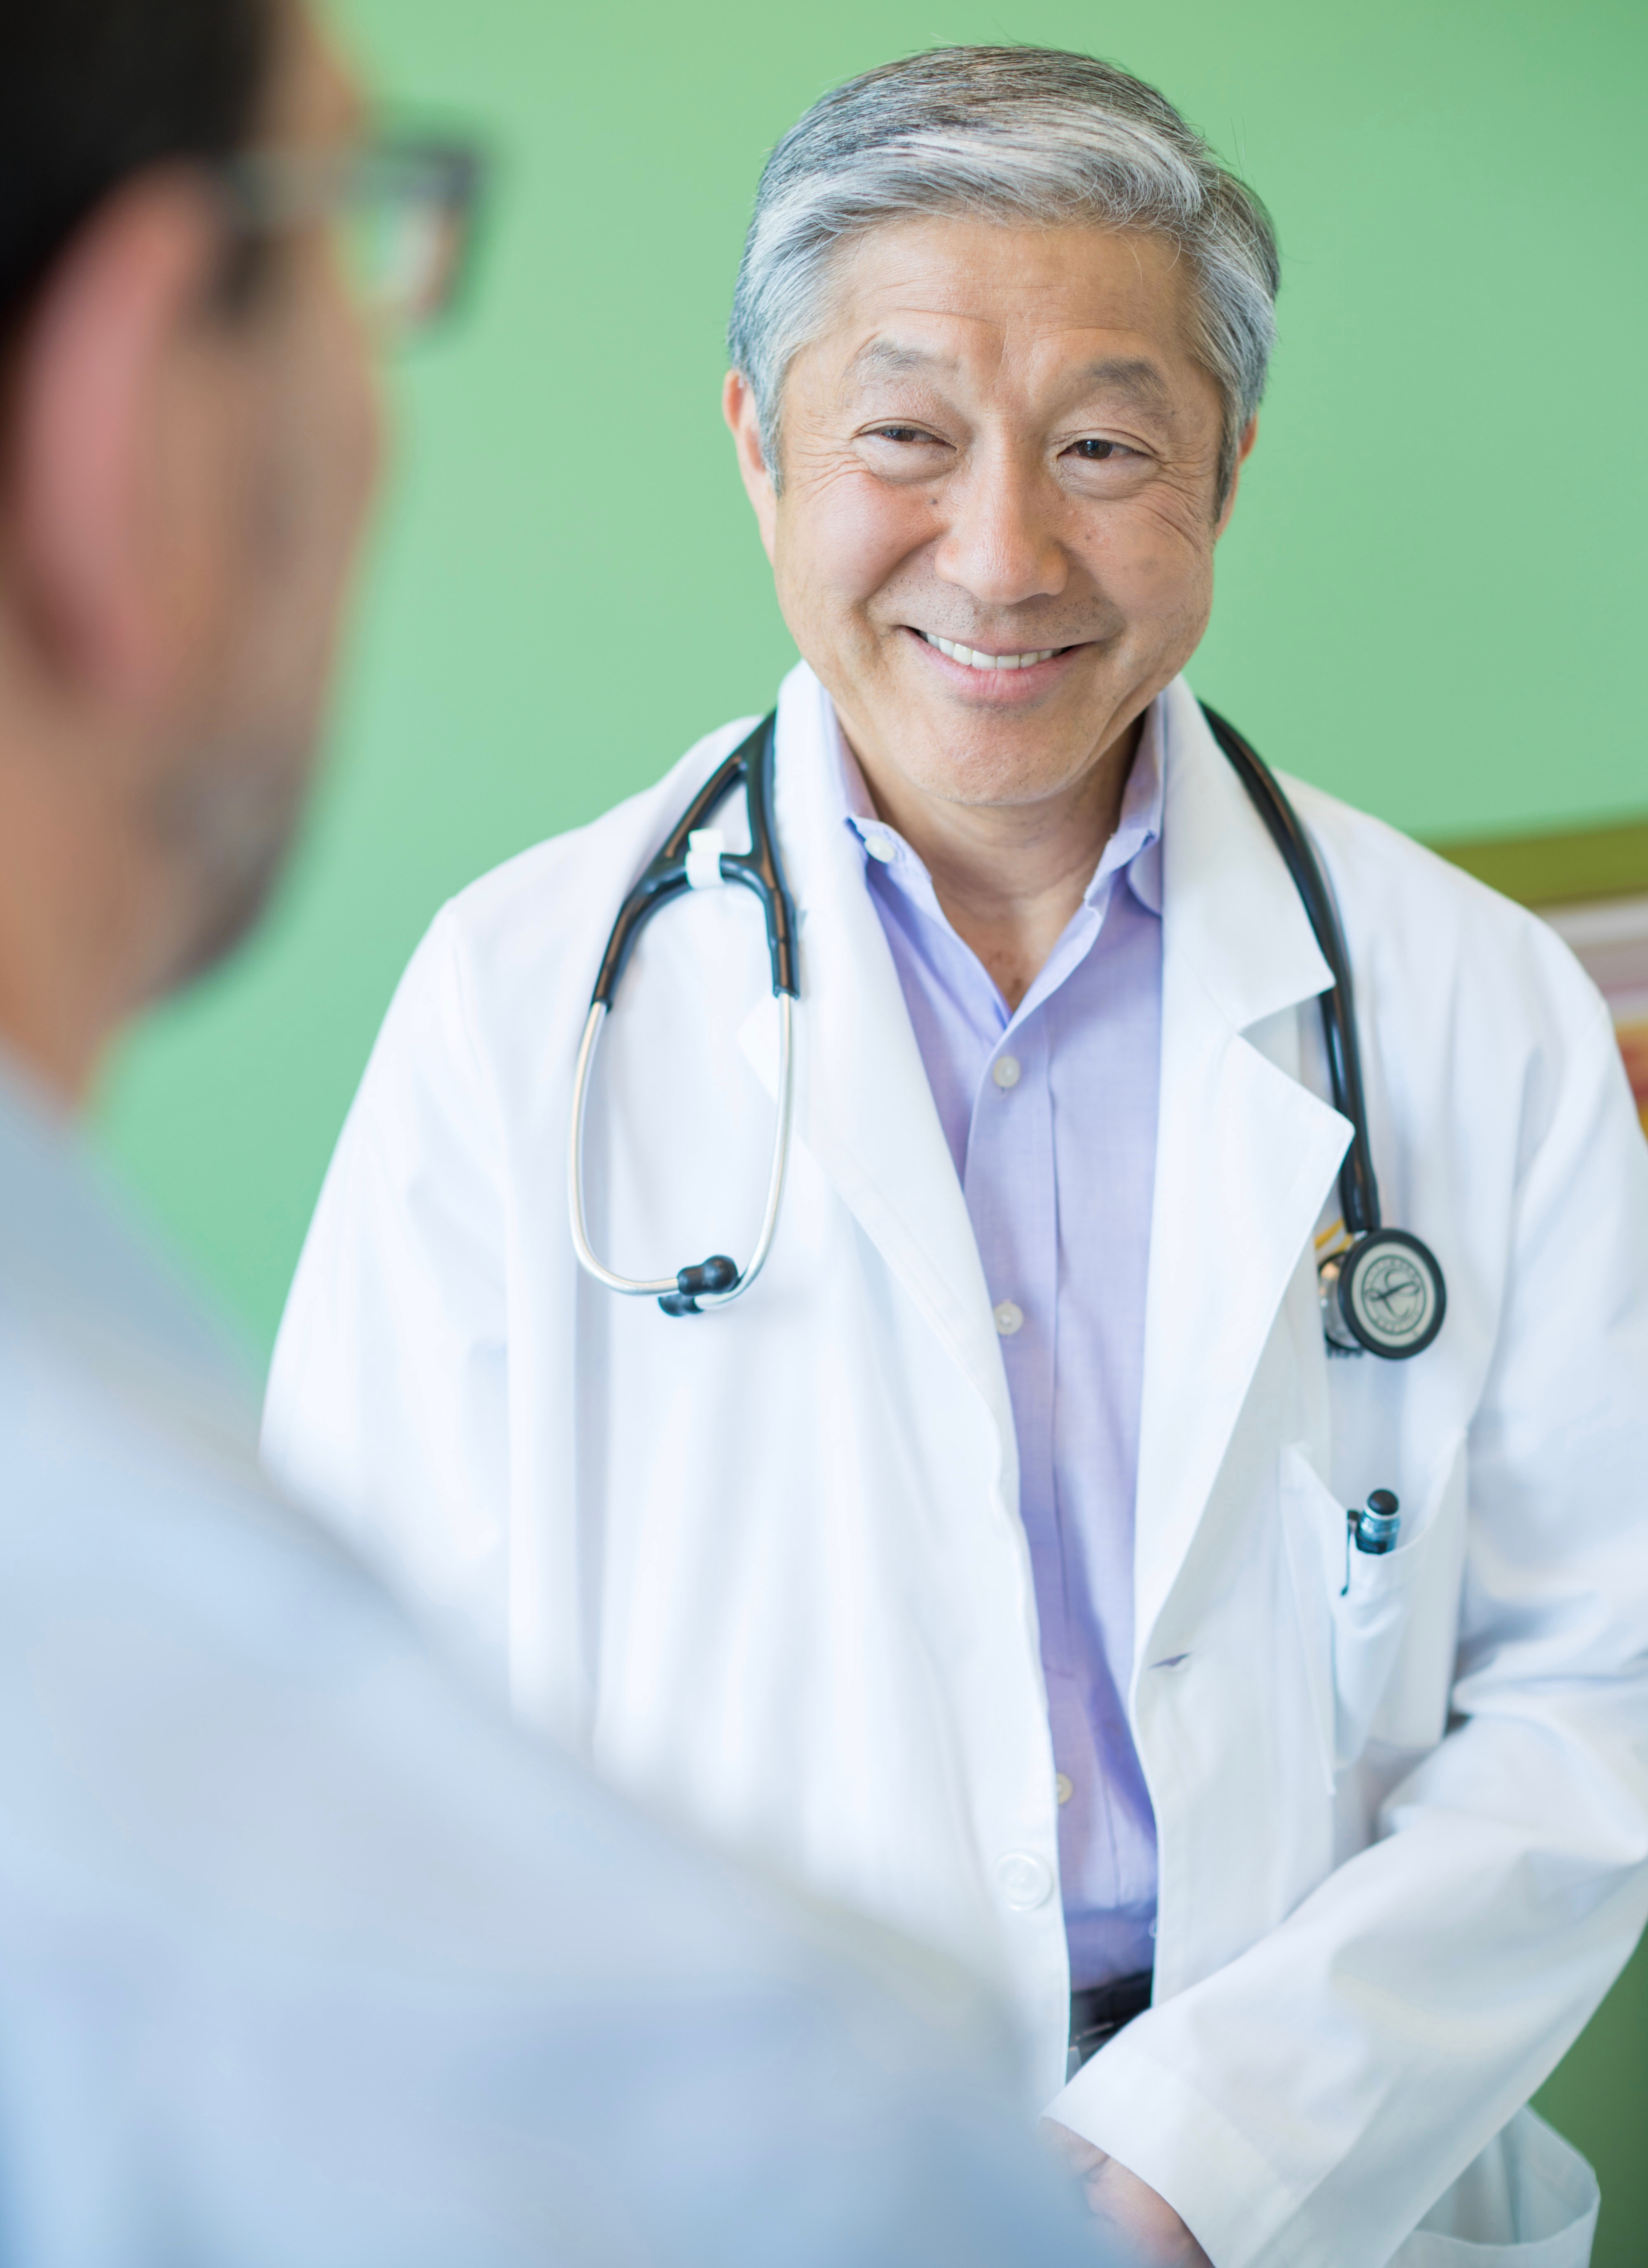 Dr. Craig Okada earned his medical degree and completed advanced training at Stanford University.